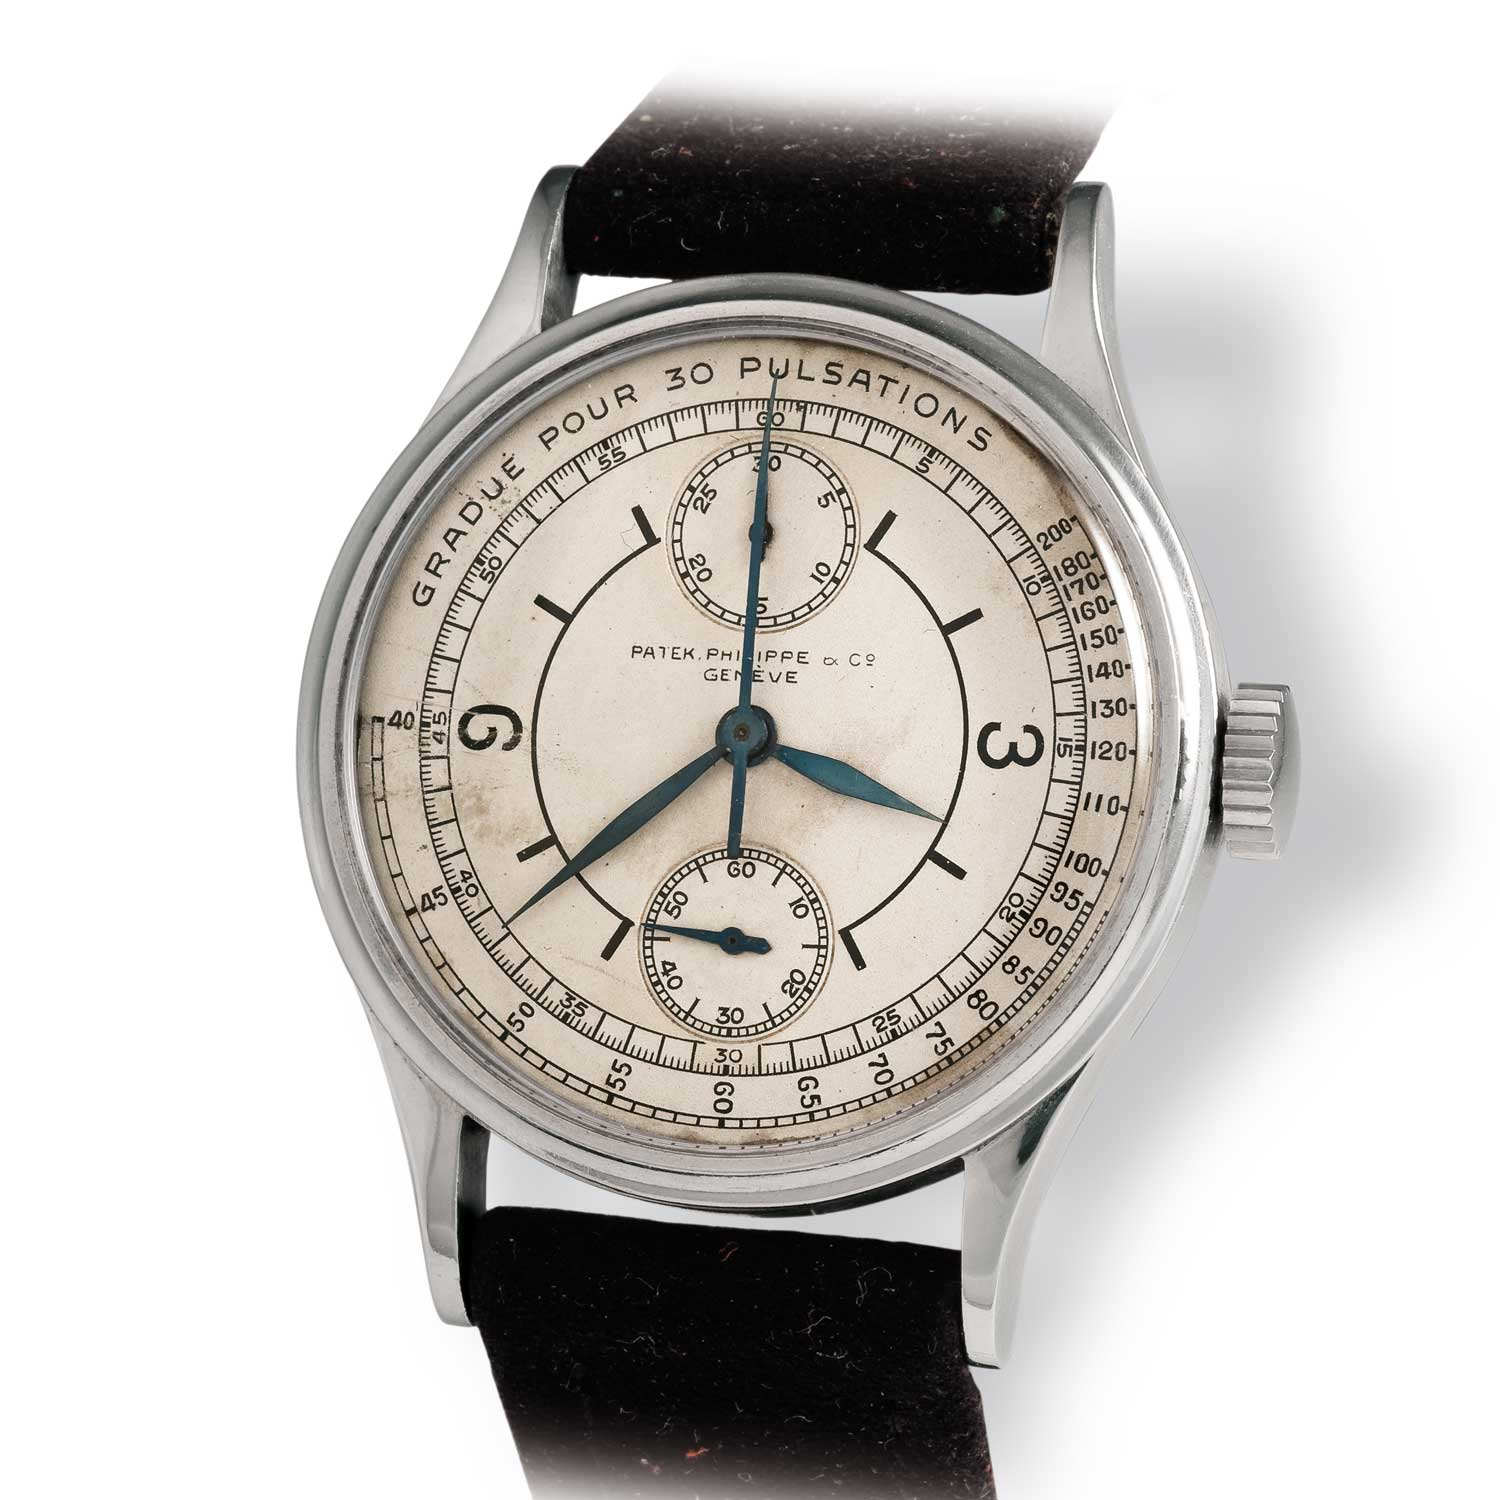 Early Patek Philippe ref. 130 steel chronograph powered by a Victorin Piguet ébauche and in a monopusher configuration, instead of the Valjoux-based movement found in the majority examples of 130 (Image: John Goldberger)